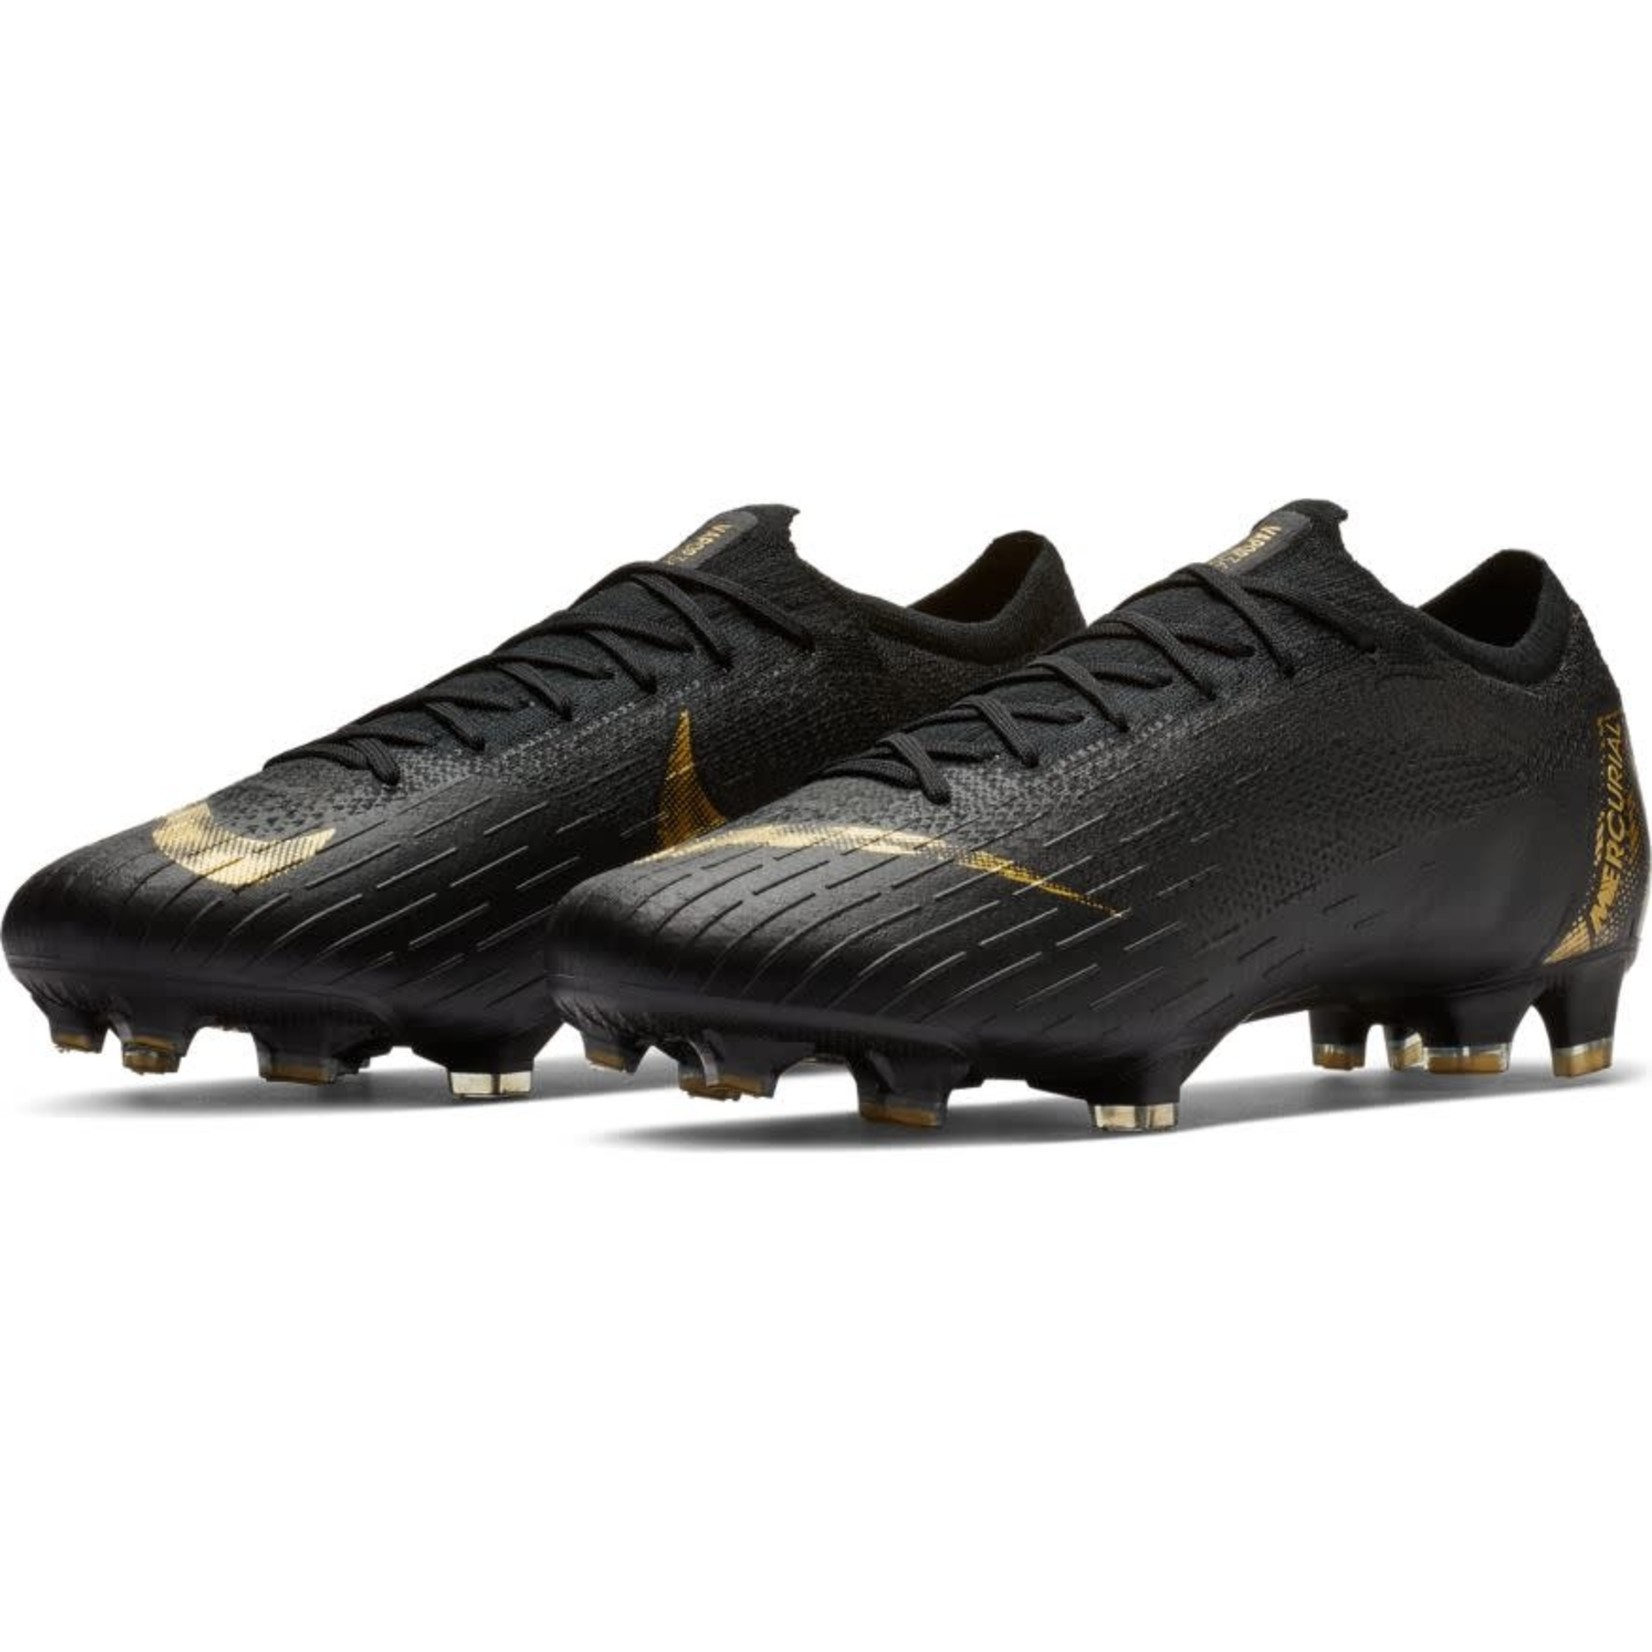 NIKE MERCURIAL VAPOR 12 ELITE FG (BLACK/GOLD)